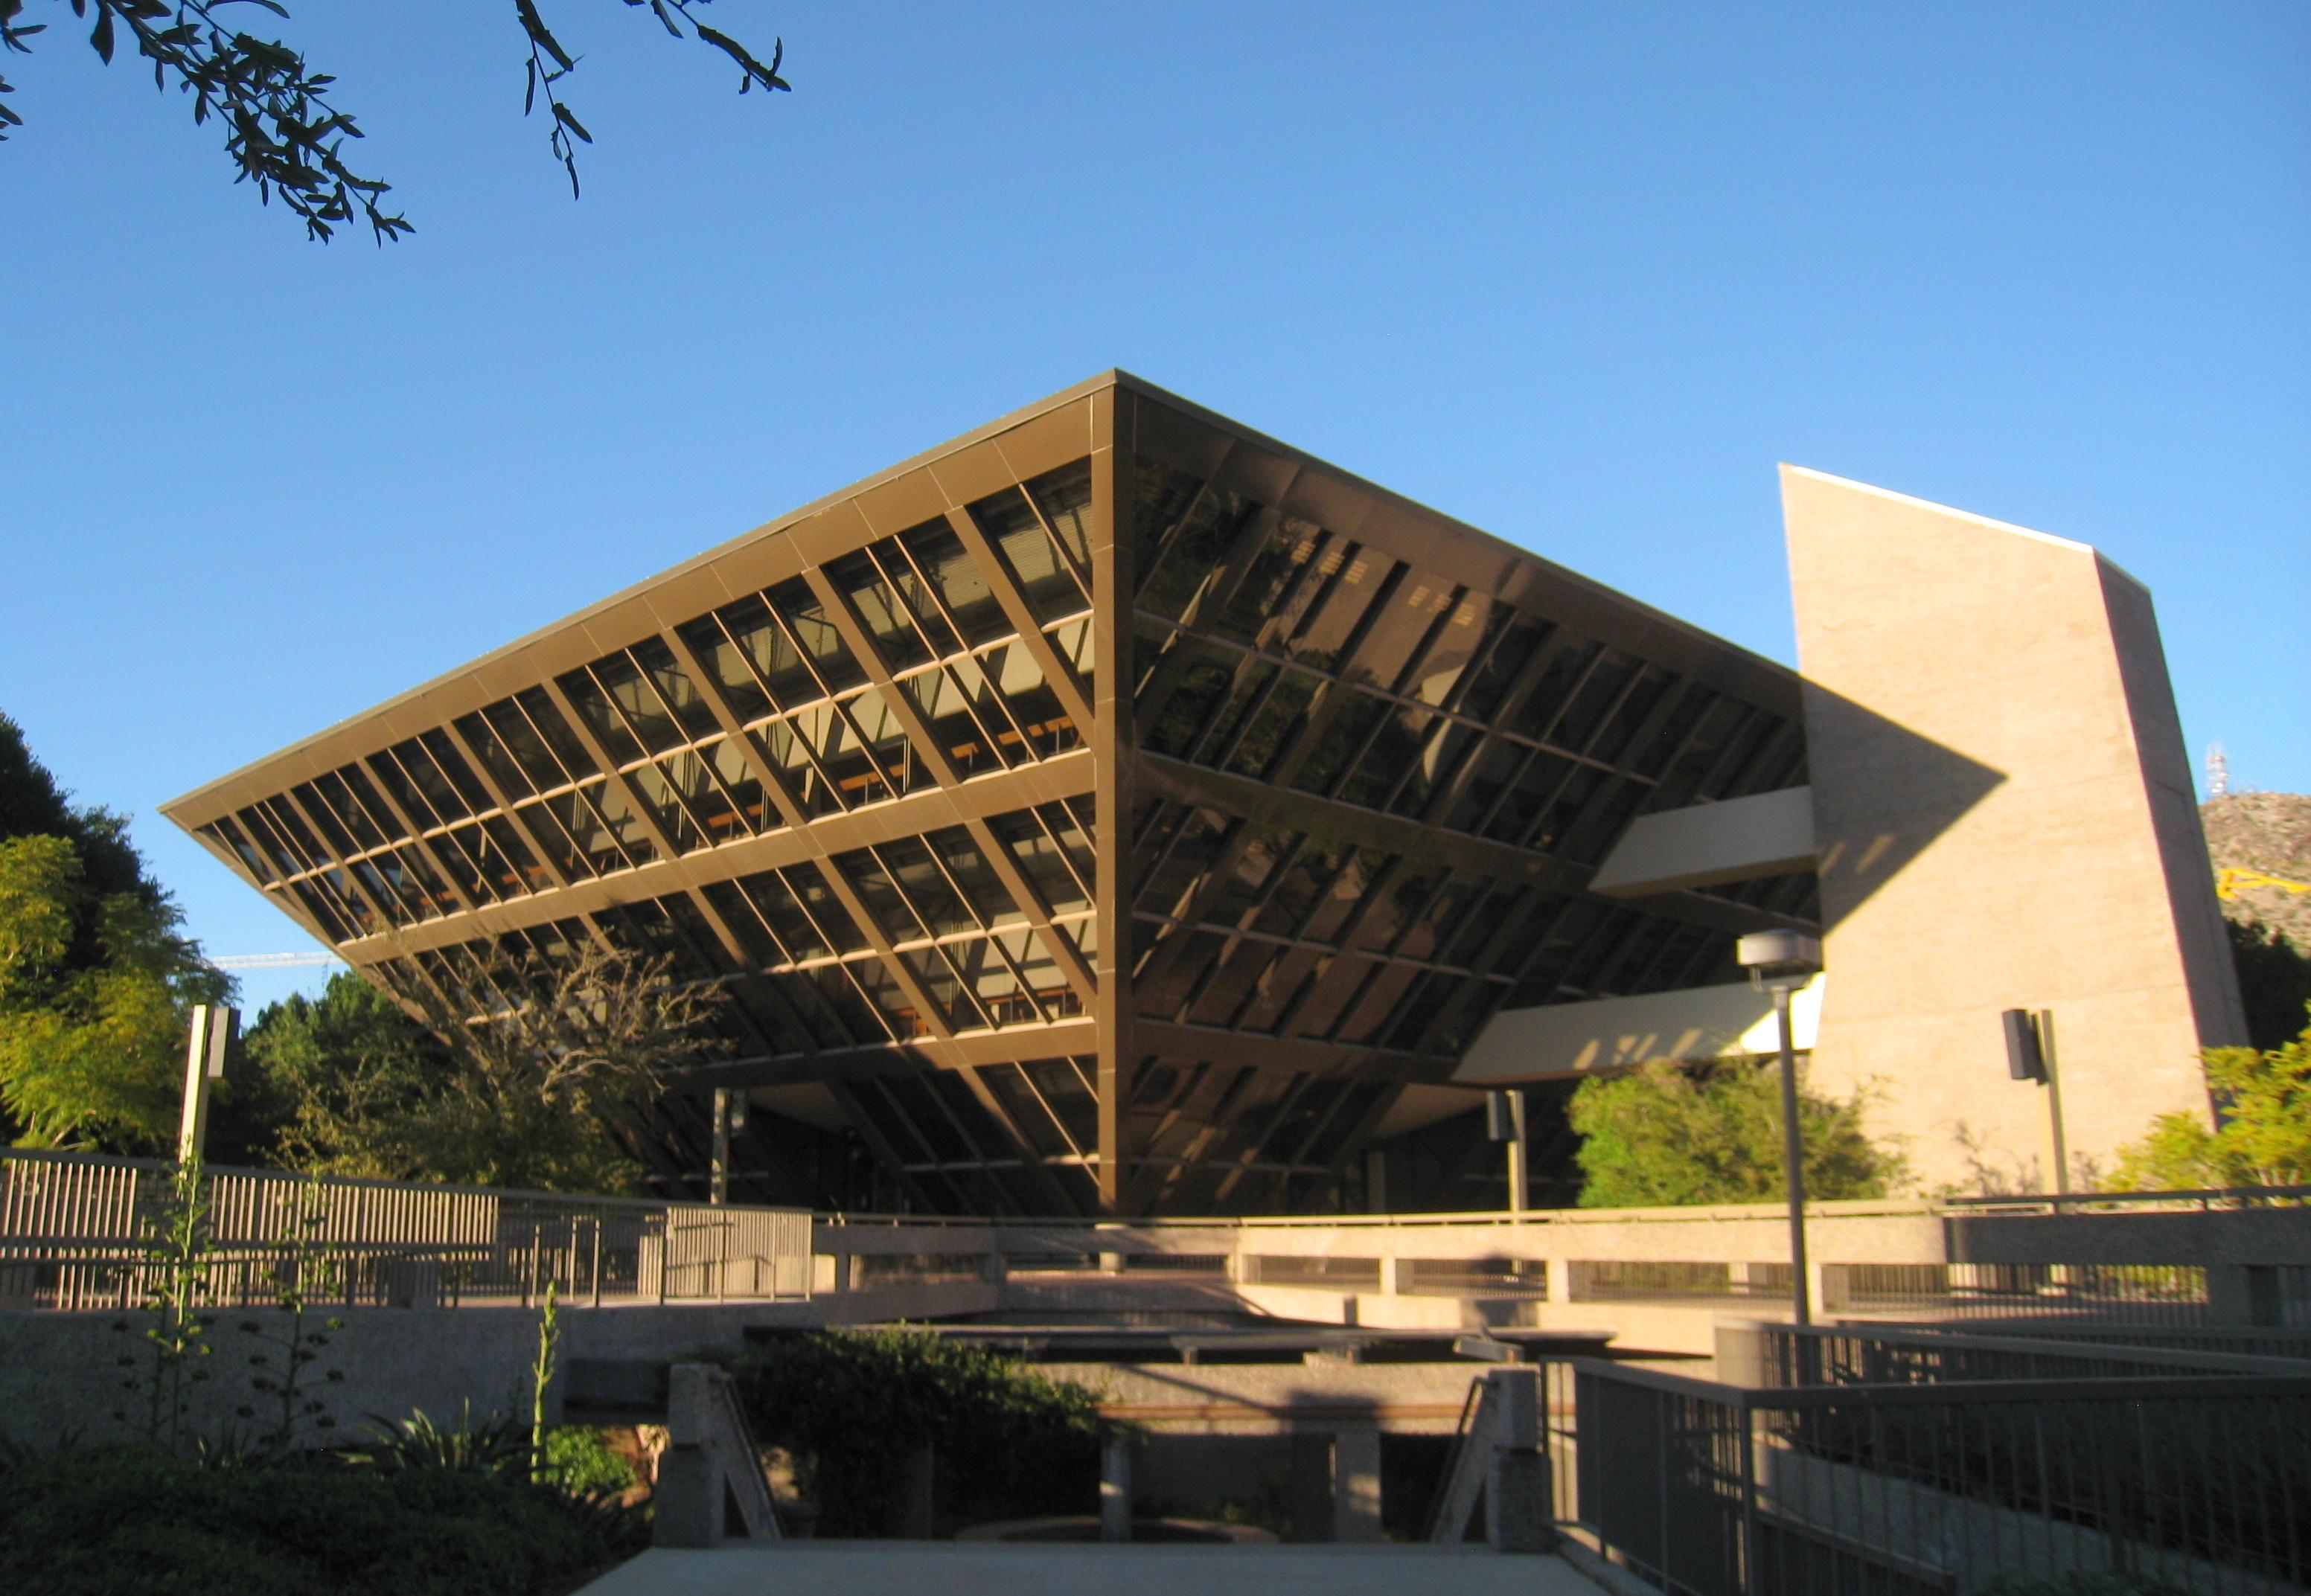 Image of Tempe City Hall